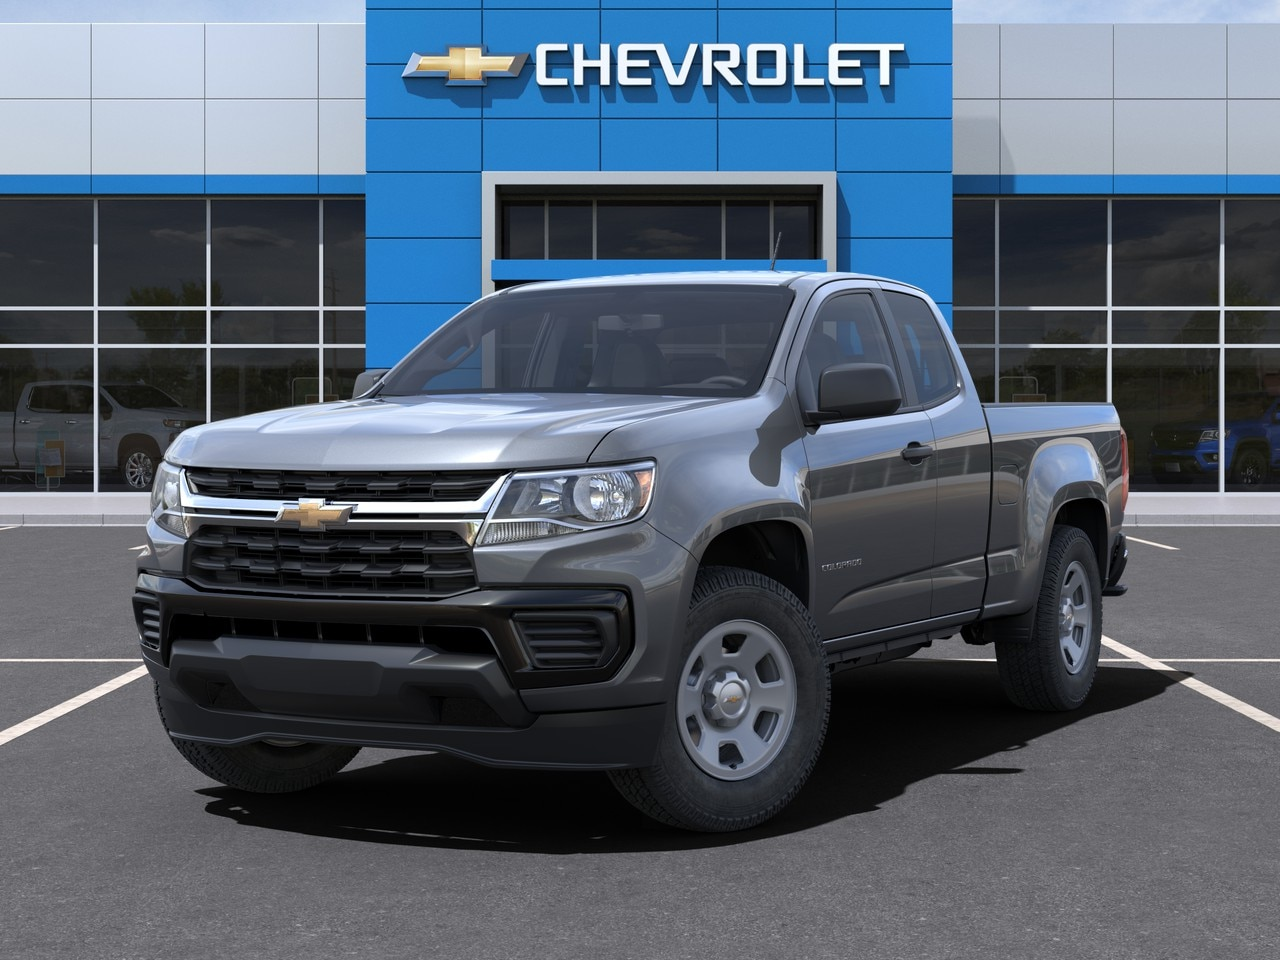 2021 Chevrolet Colorado Extended Cab 4x2, Pickup #M1193360 - photo 5